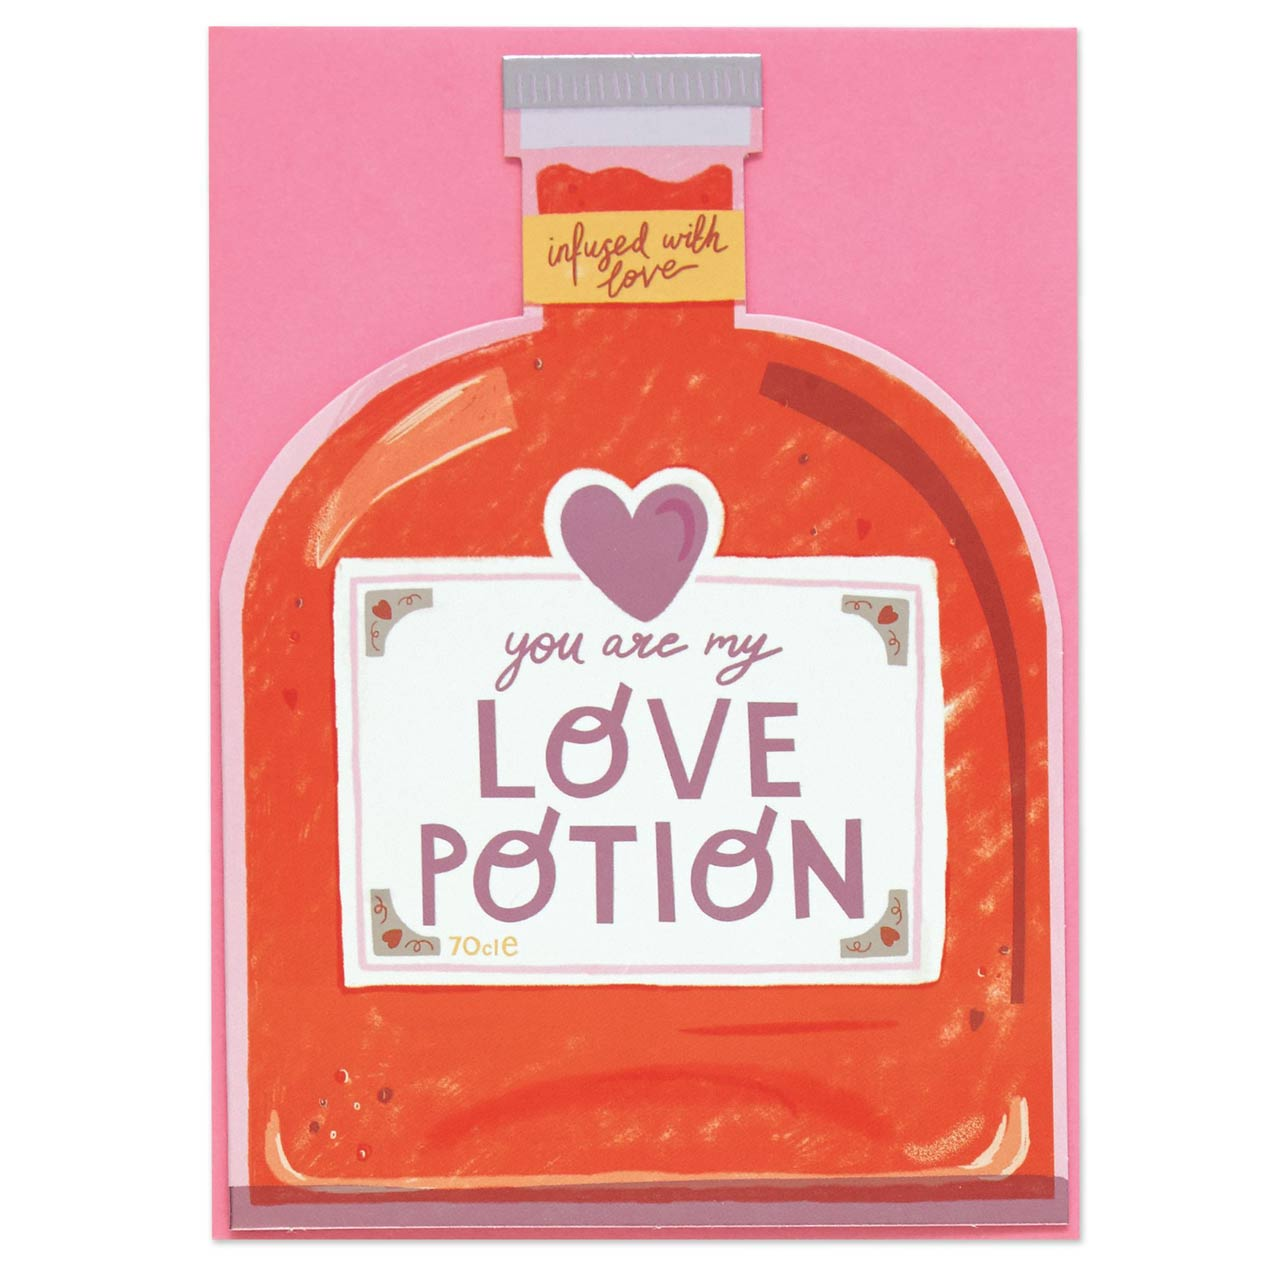 Love Potion Die Cut Foiled Greeting Card